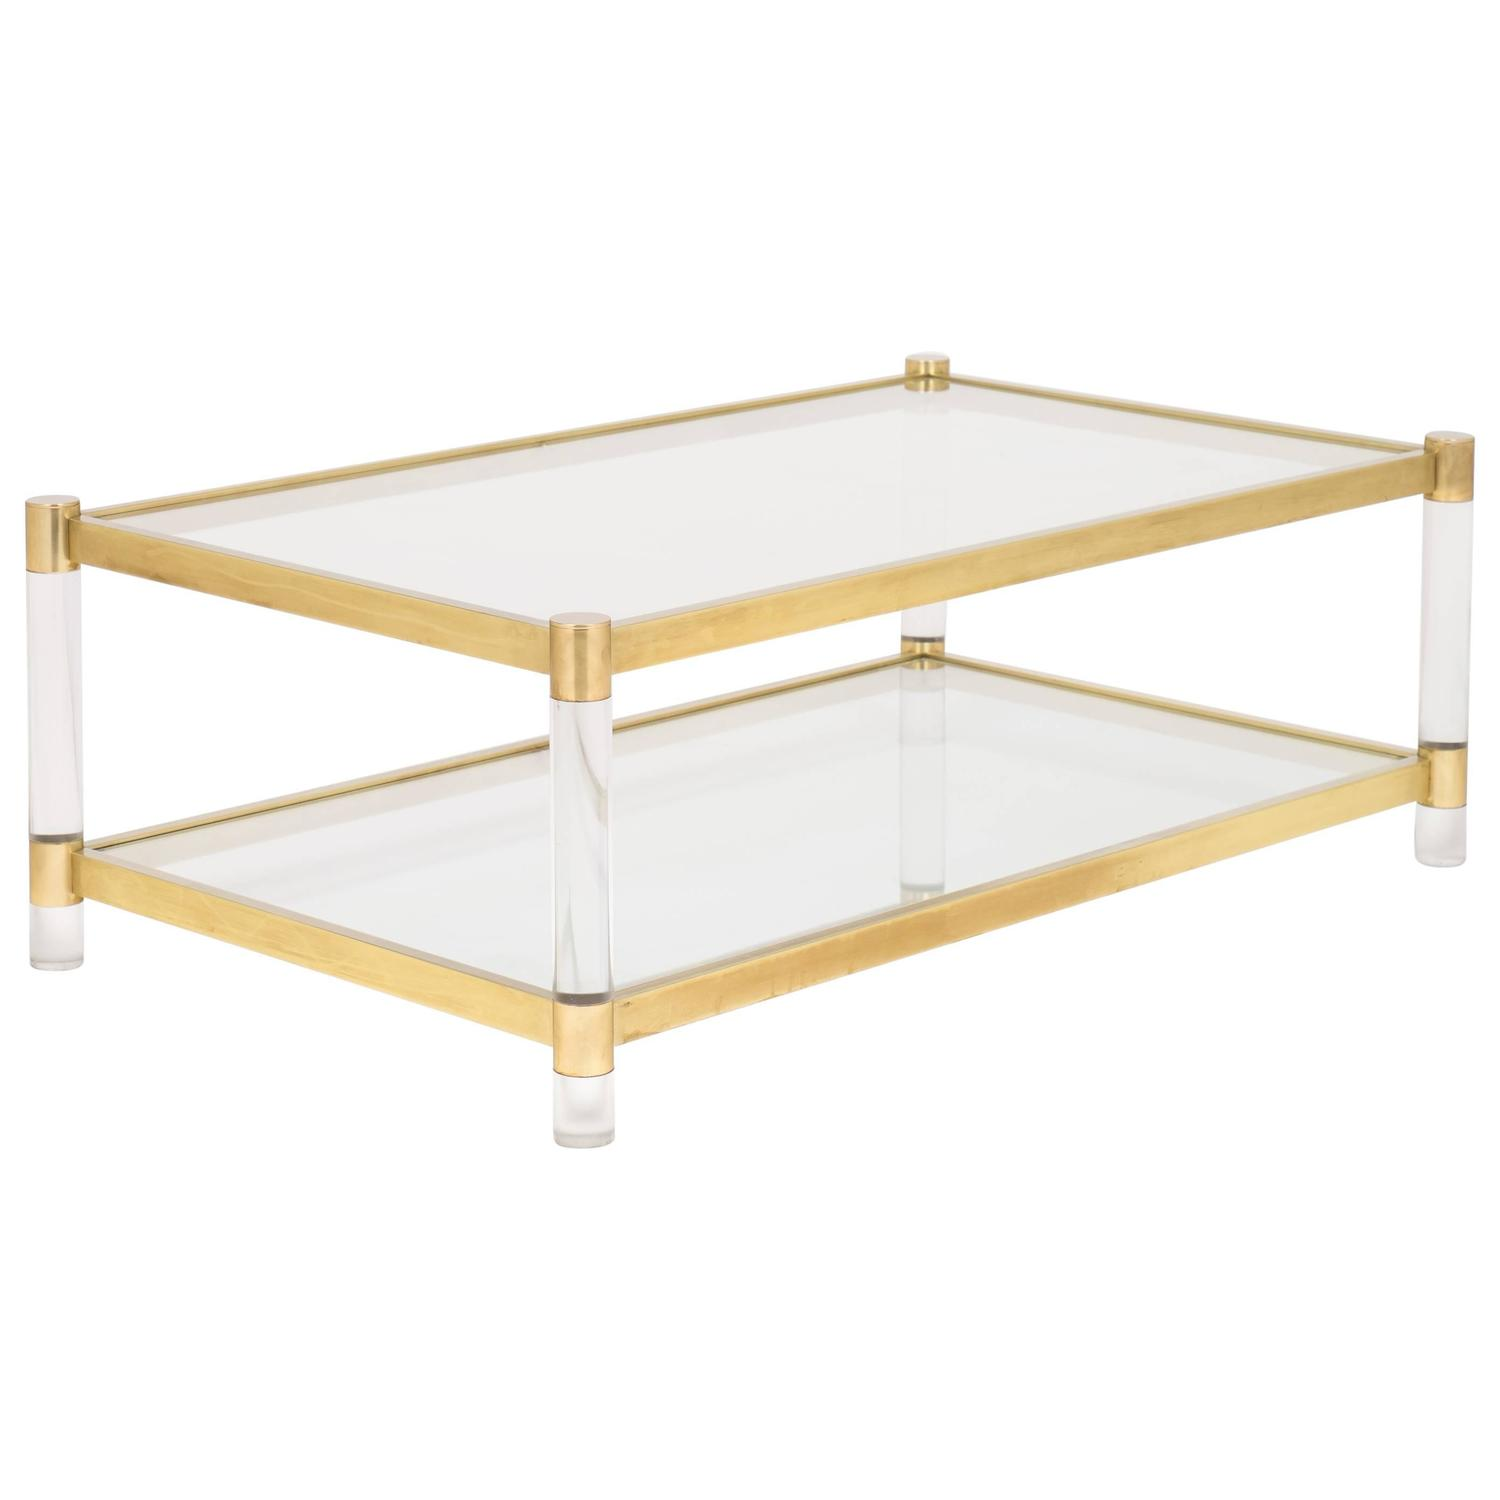 French vintage lucite and brass coffee table at 1stdibs for Lucite and brass coffee table